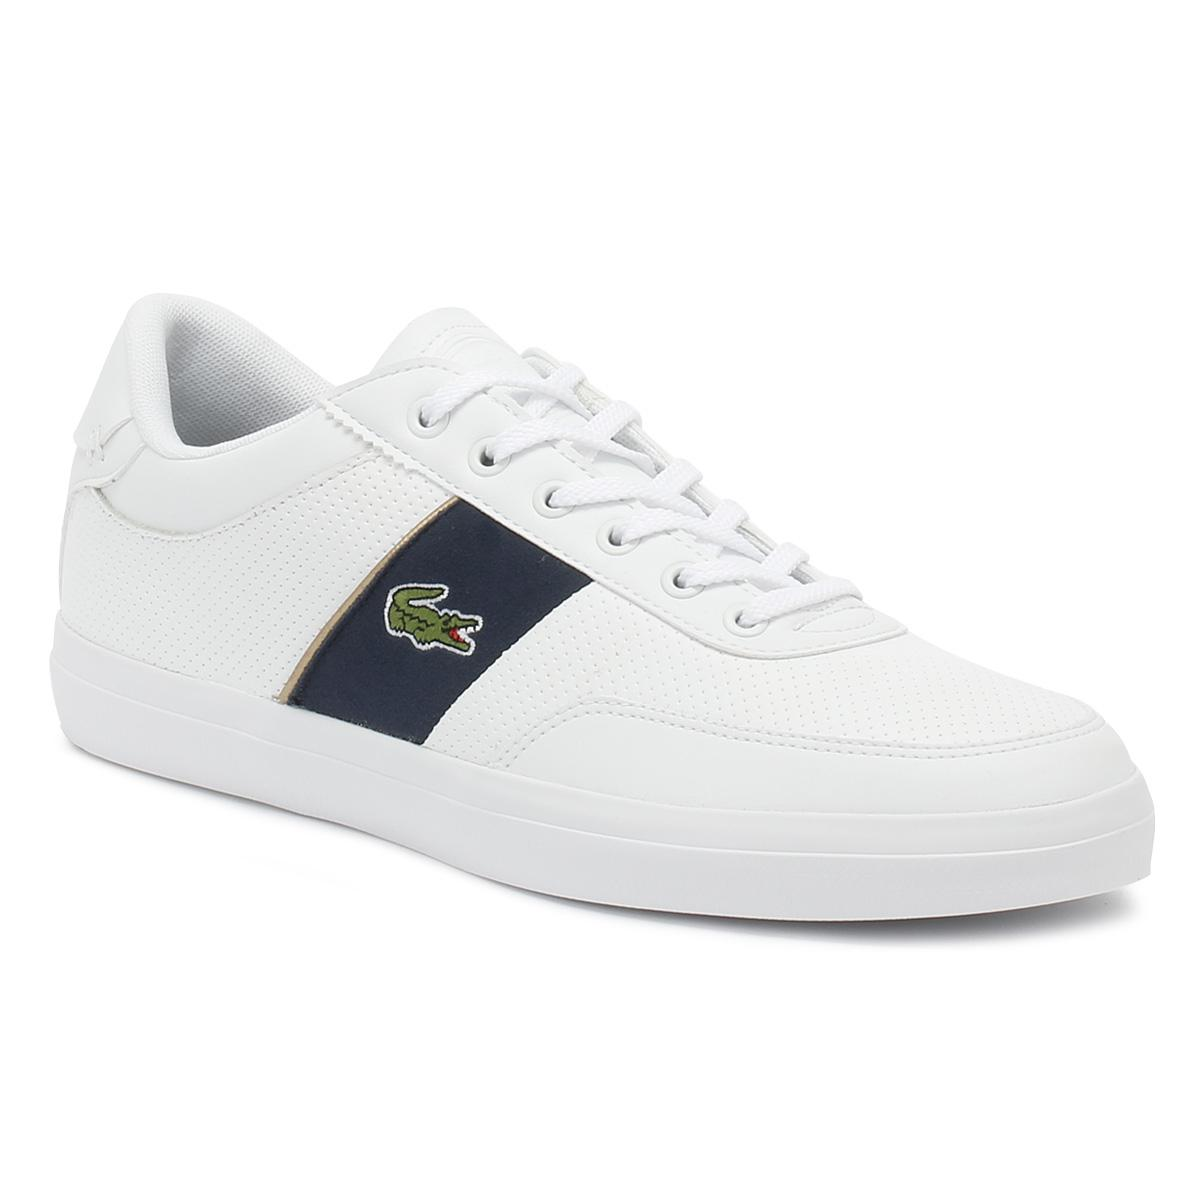 8057fa82df2d14 Lyst - Lacoste Mens White   Navy Court Master 318 1 Trainers in ...